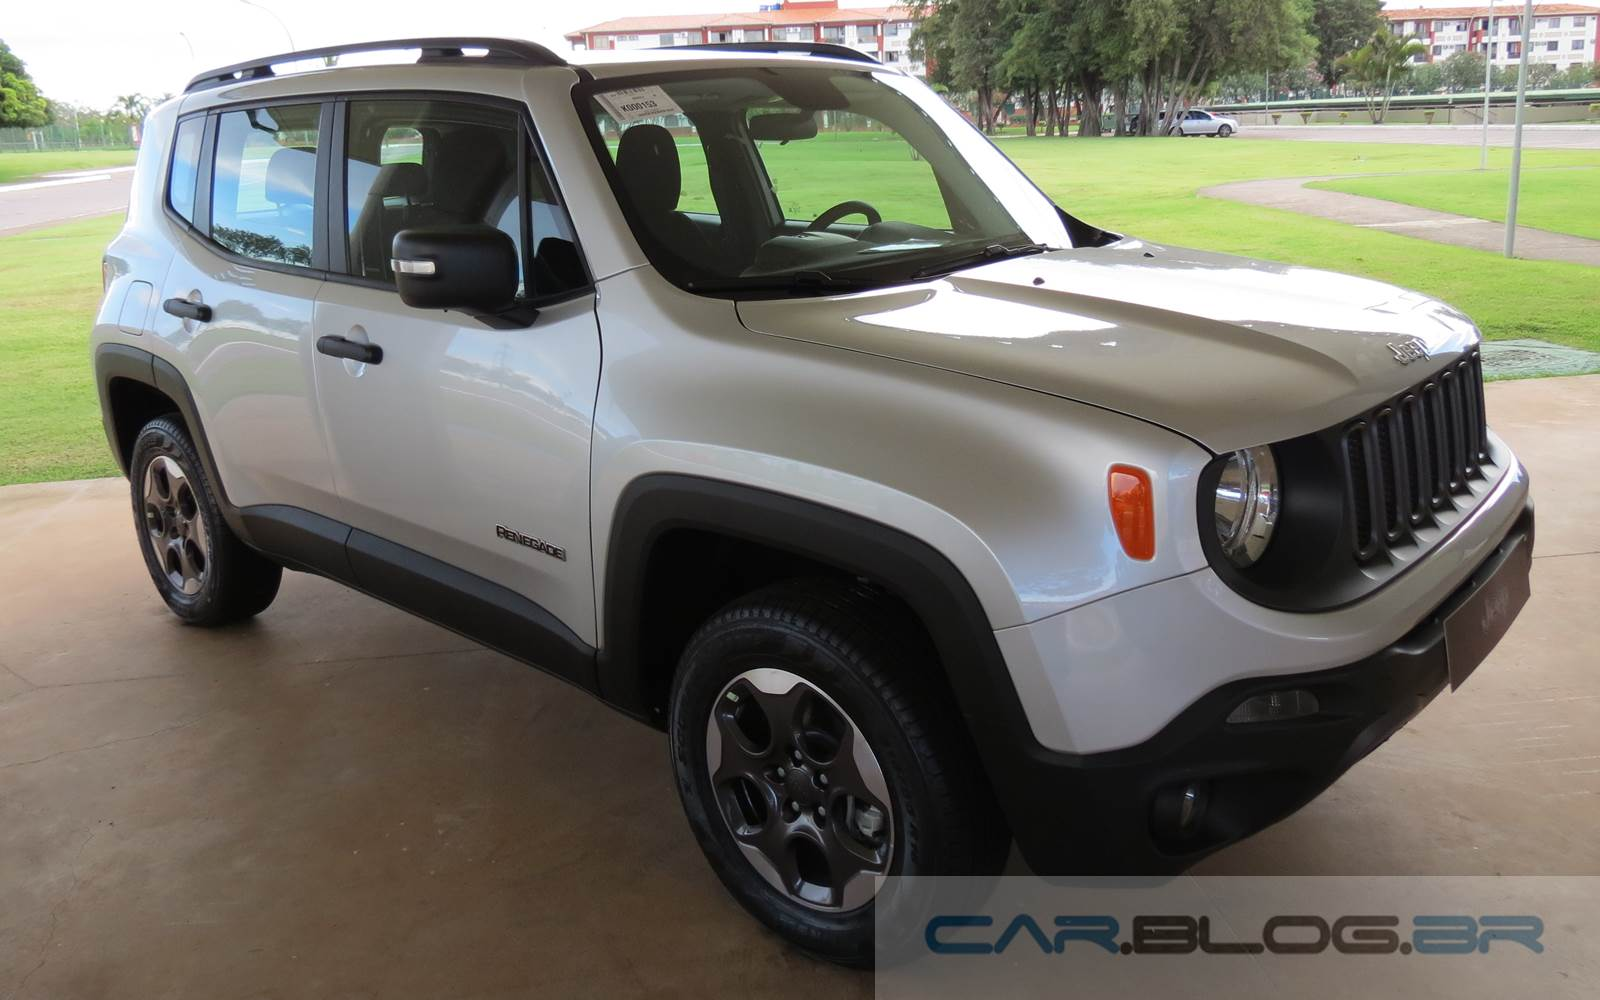 Jeep Renegade Sport 2.0 Turbo Diesel - R$ 99.900 reais